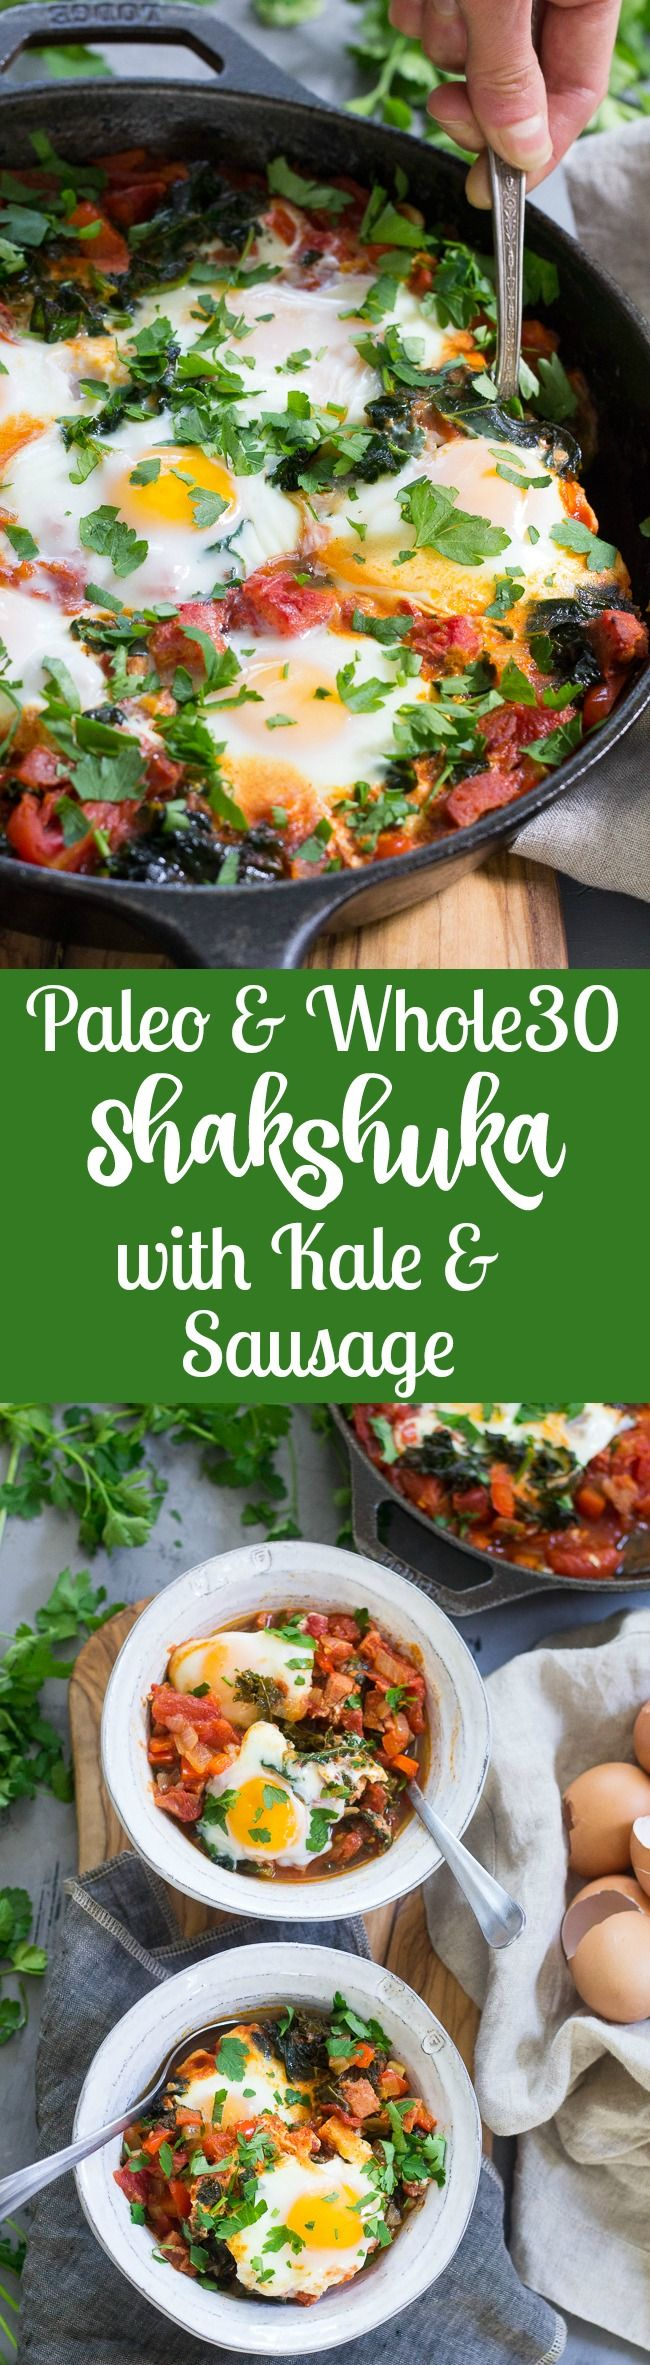 Eggs simmer in a spicy tomato sauce with kale and sausage in this savory and filling Shakshuka. This Paleo and Whole30 Shakshuka makes a comforting and healthy meal for brunch, dinner, or whenever!